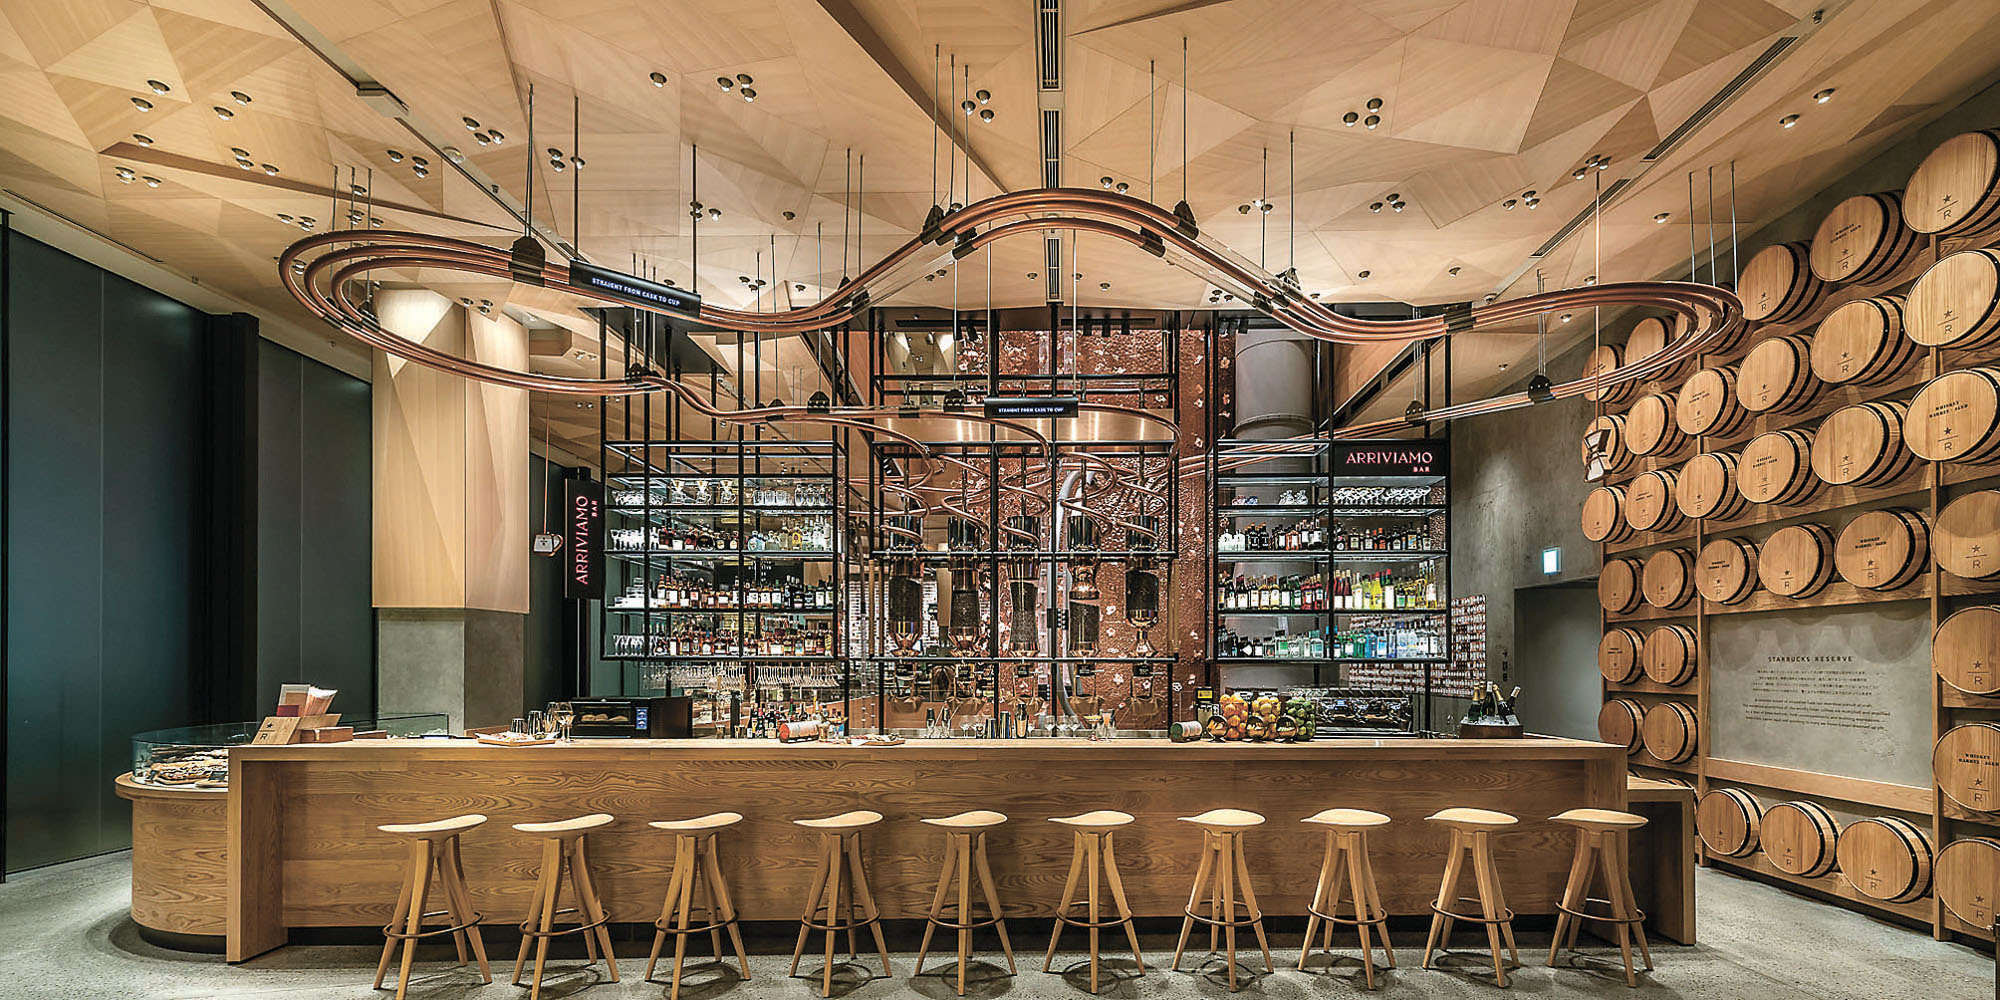 More than coffee: The Reserve Roastery Tokyo's third-floor Arriviamo bar serves coffee and tea-infused cocktails.   COURTESY OF STARBUCKS